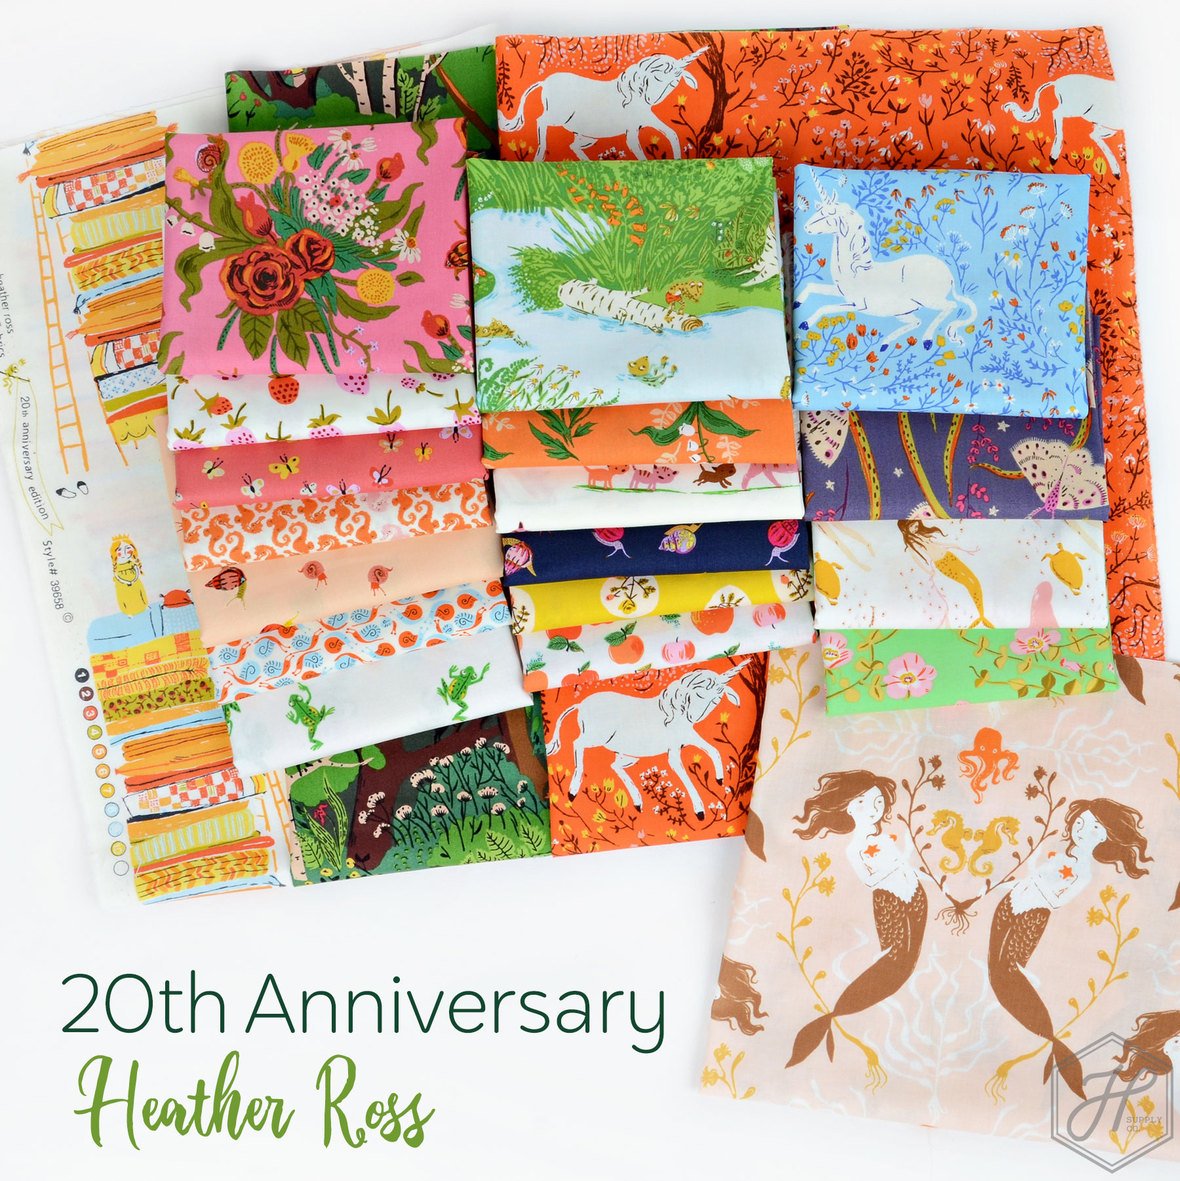 Heather-Ross-20th-Anniversary-Fabric-at-Hawthorne-Supply-Co